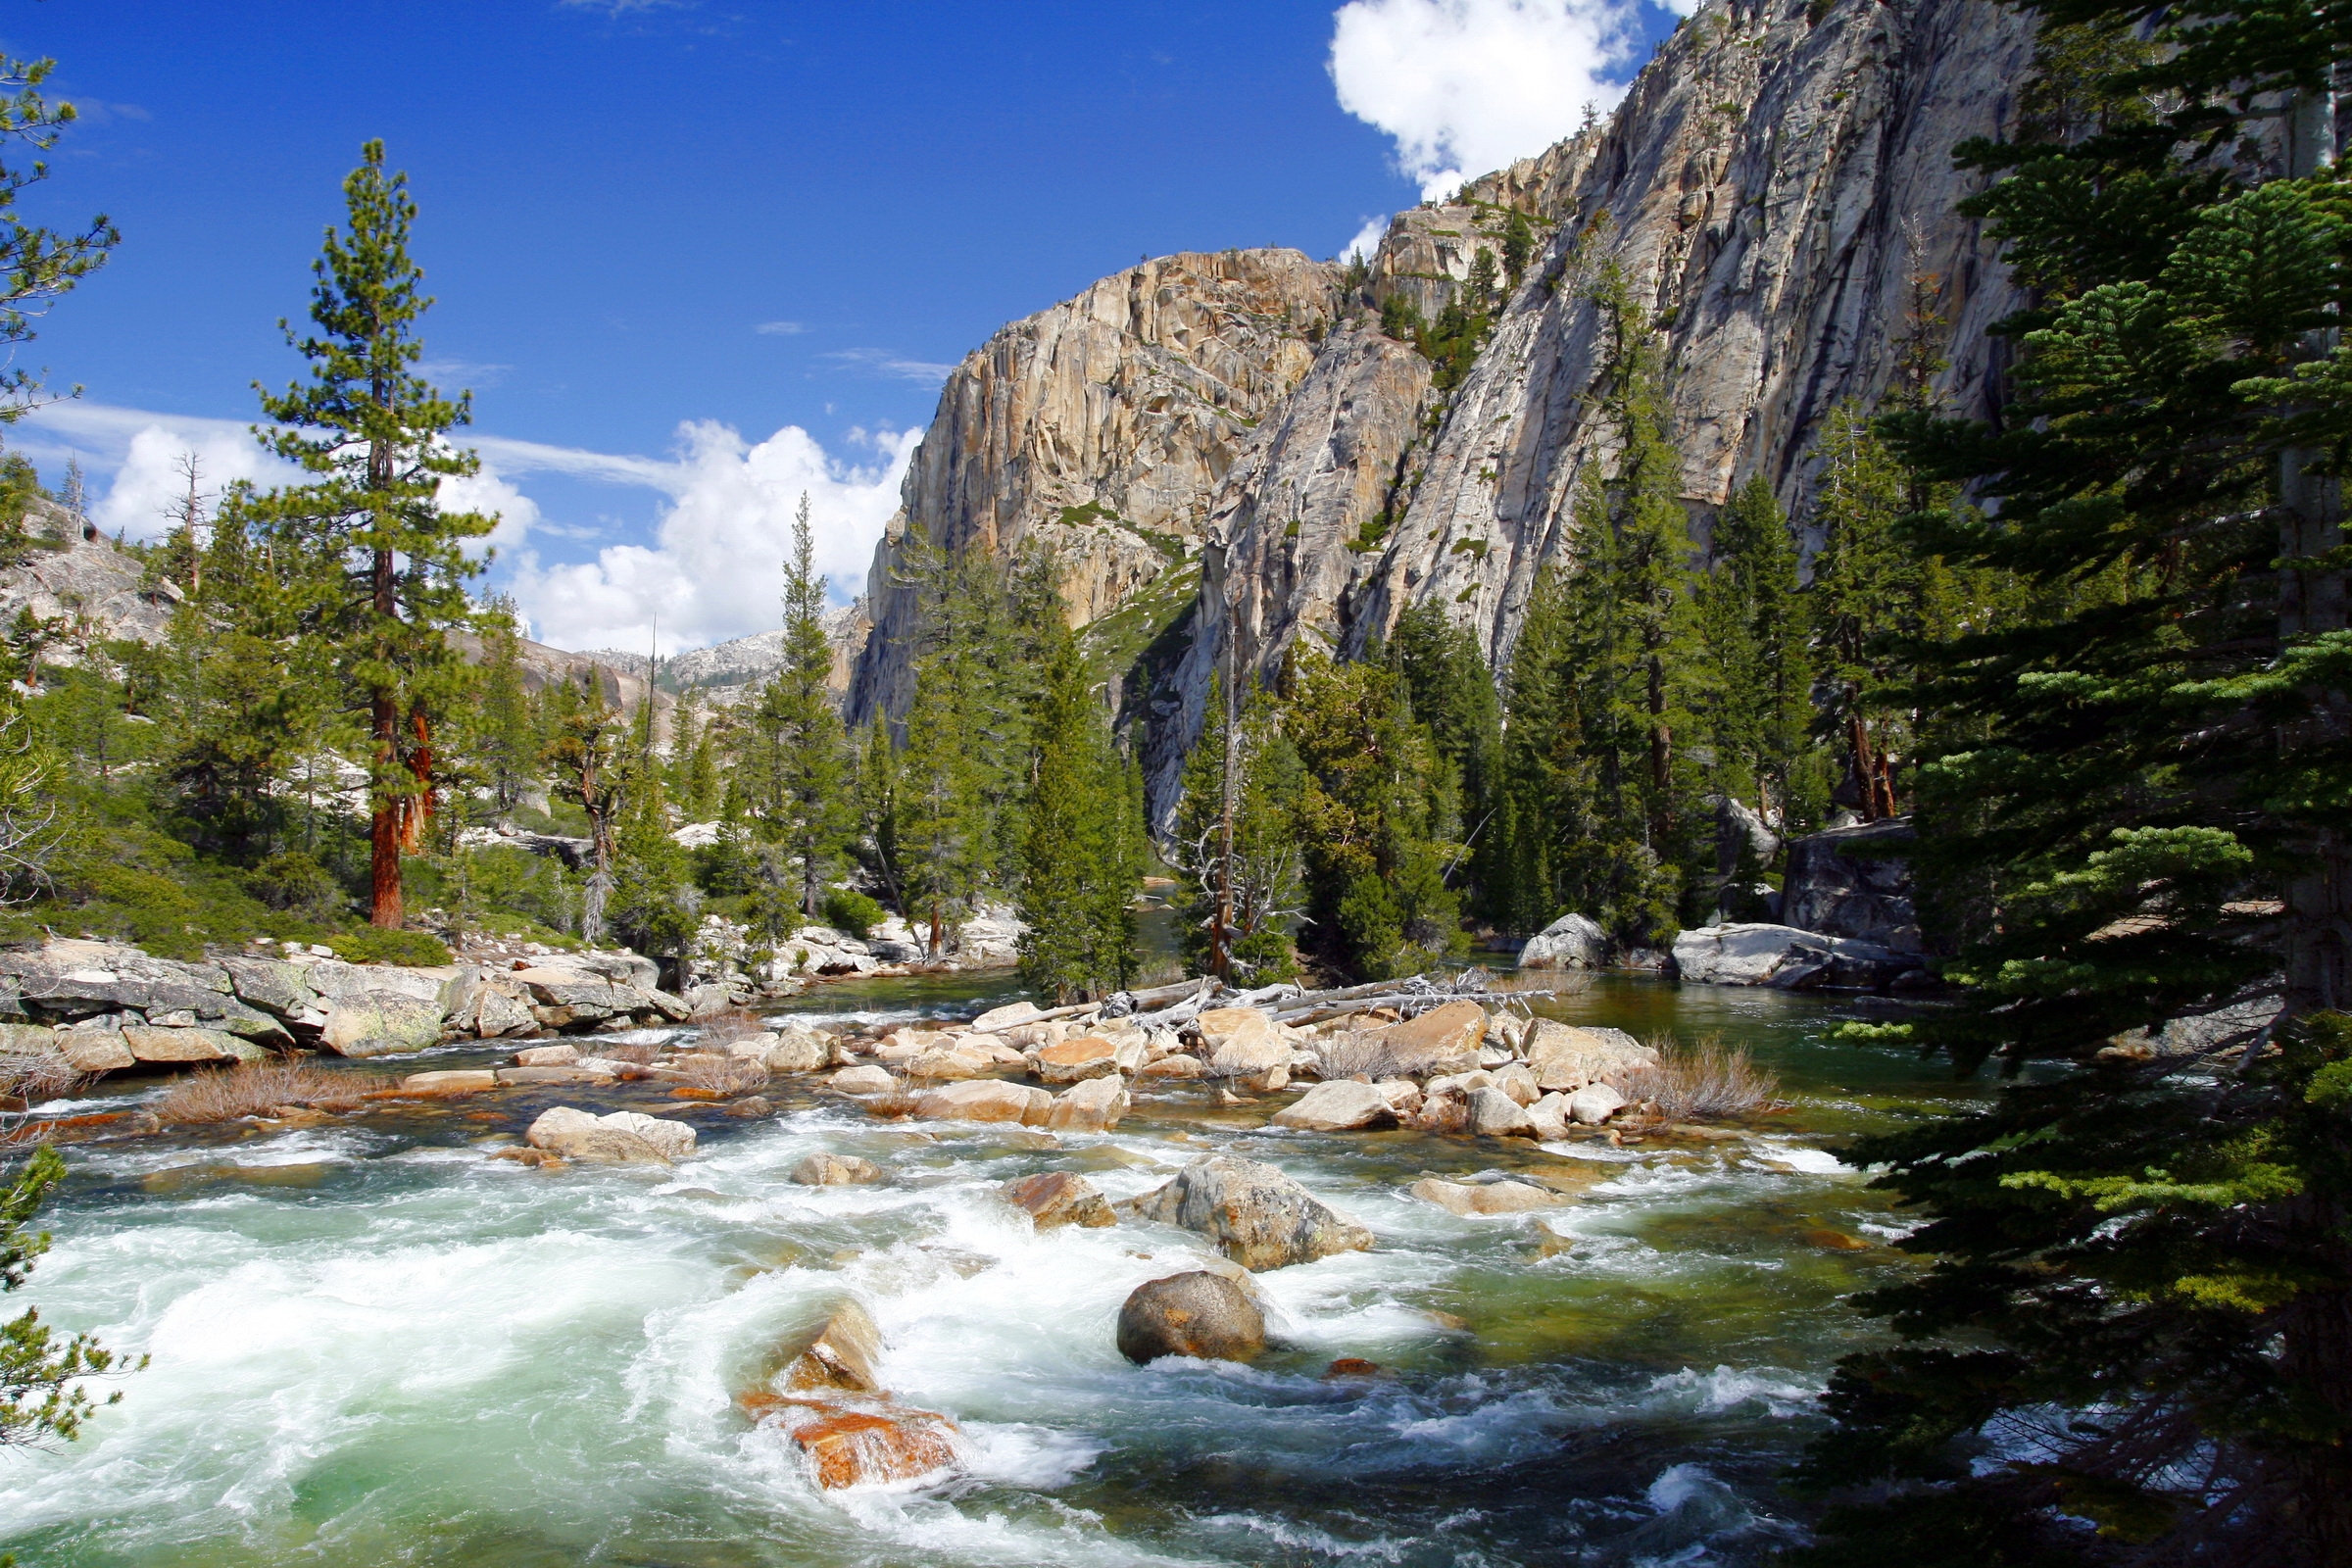 Us rivers california yosemite hd wallpapers free Hd usa